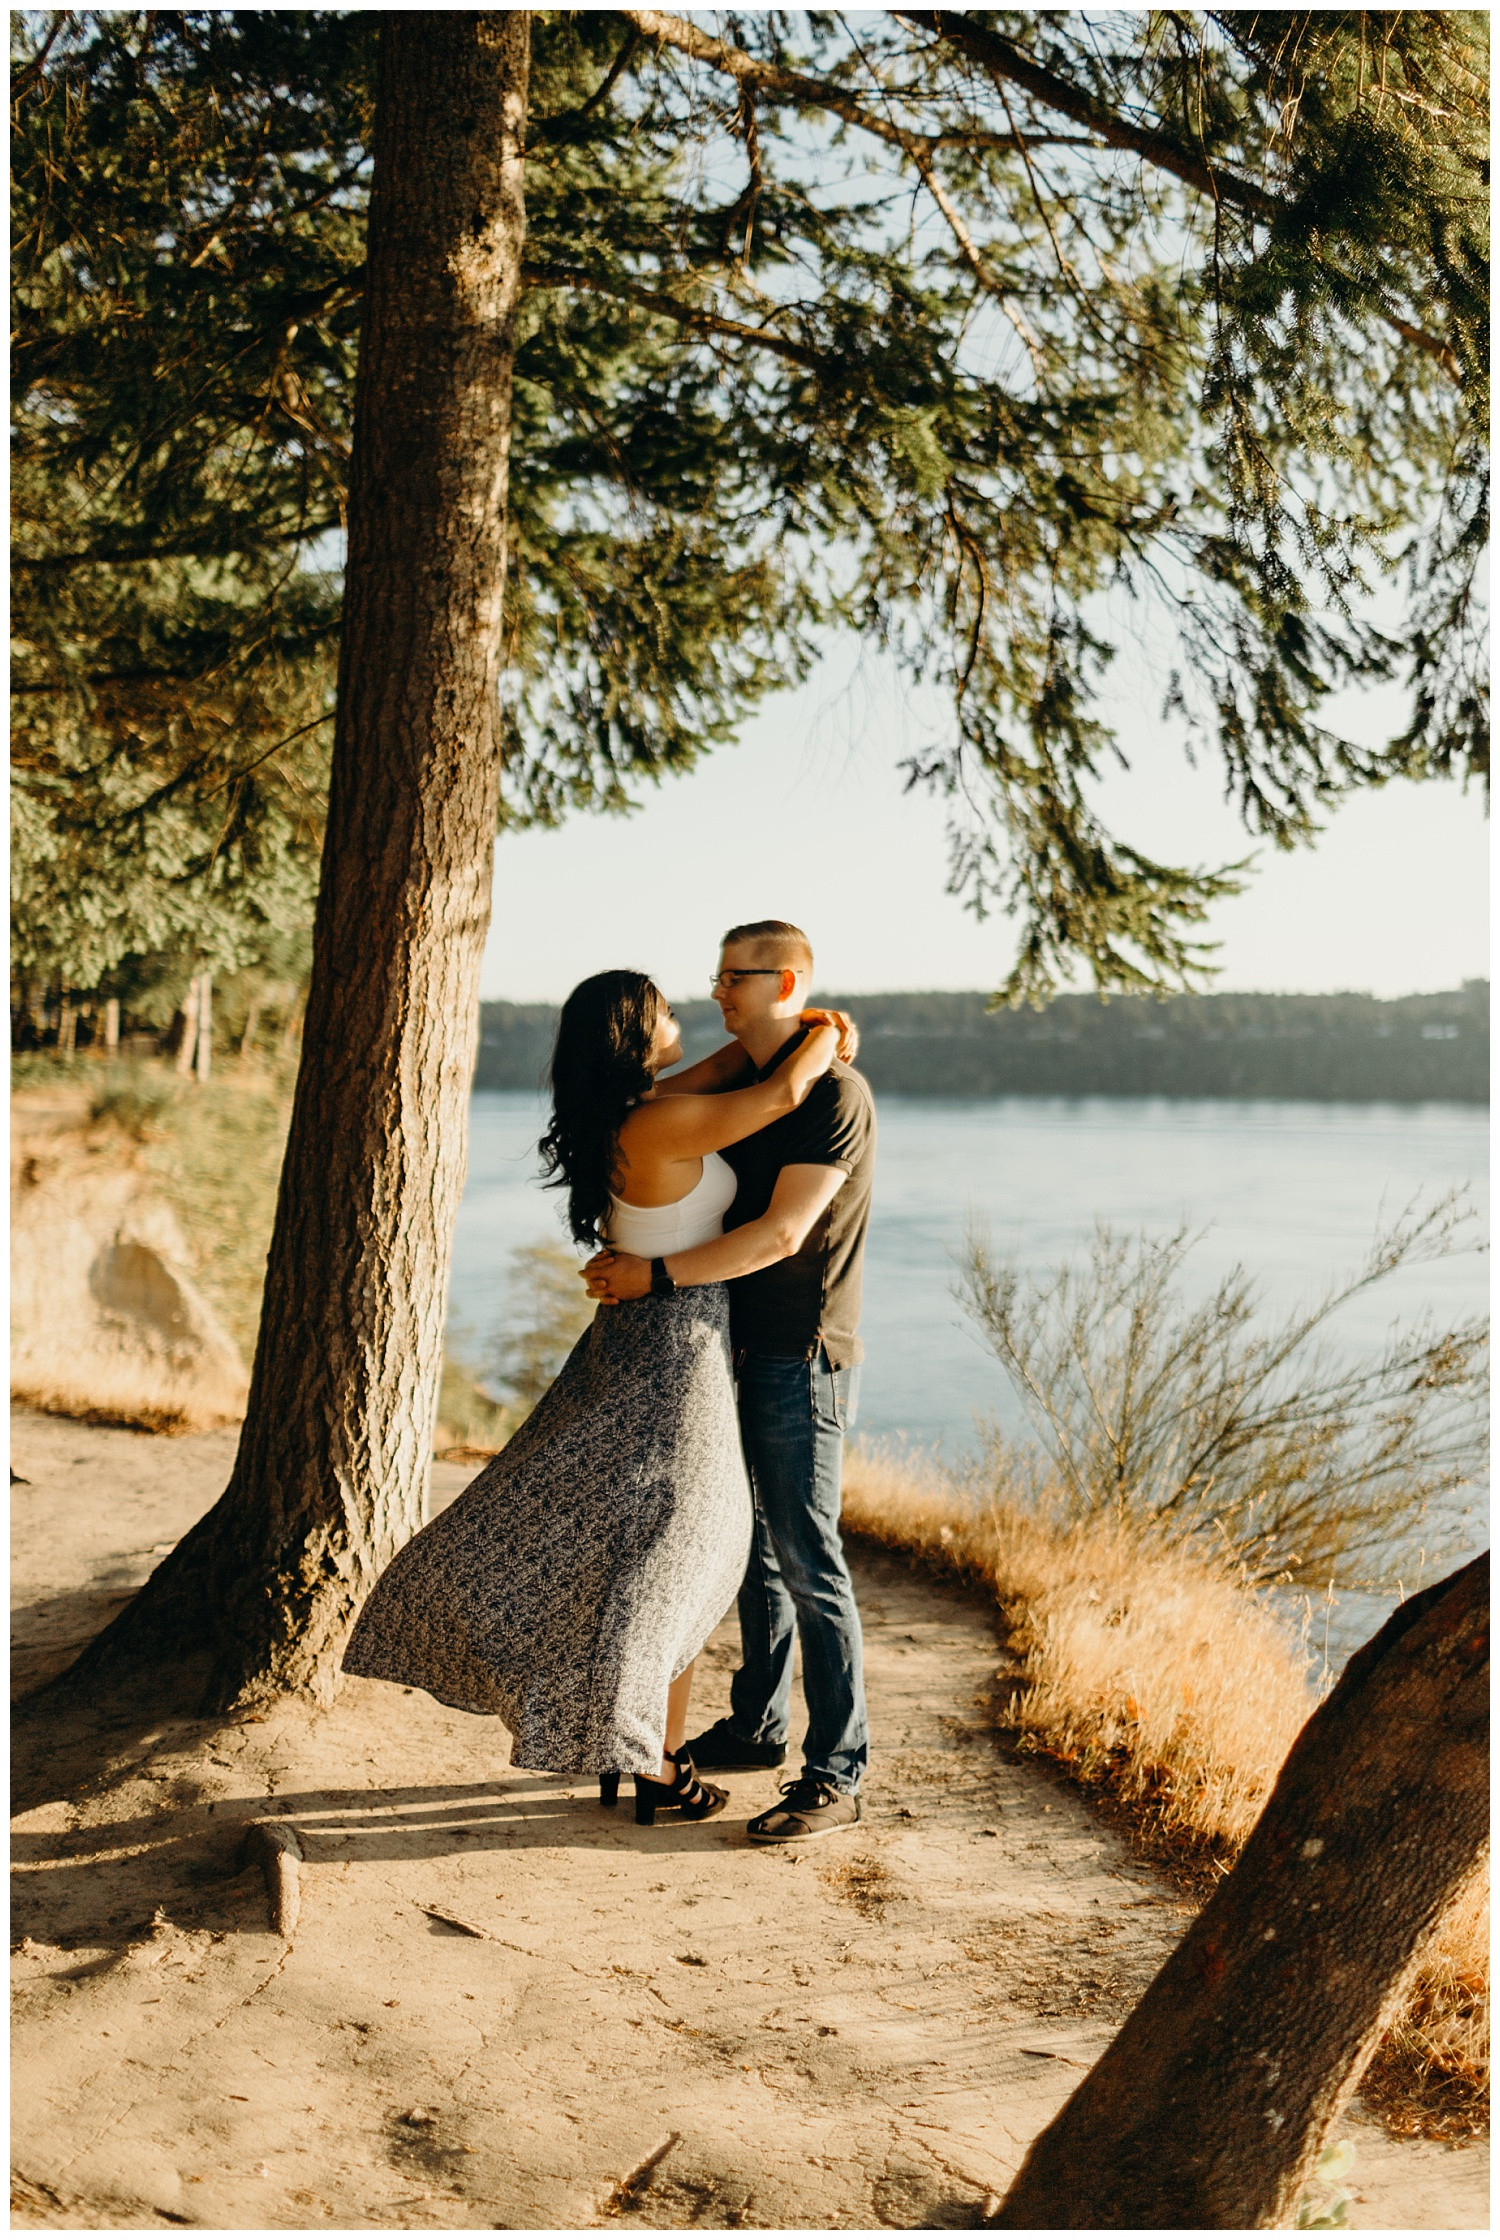 Jaynah and Kevin Point Defiance Rose Garden Owen Beach Tacoma Washington Engagement Session (62).jpg